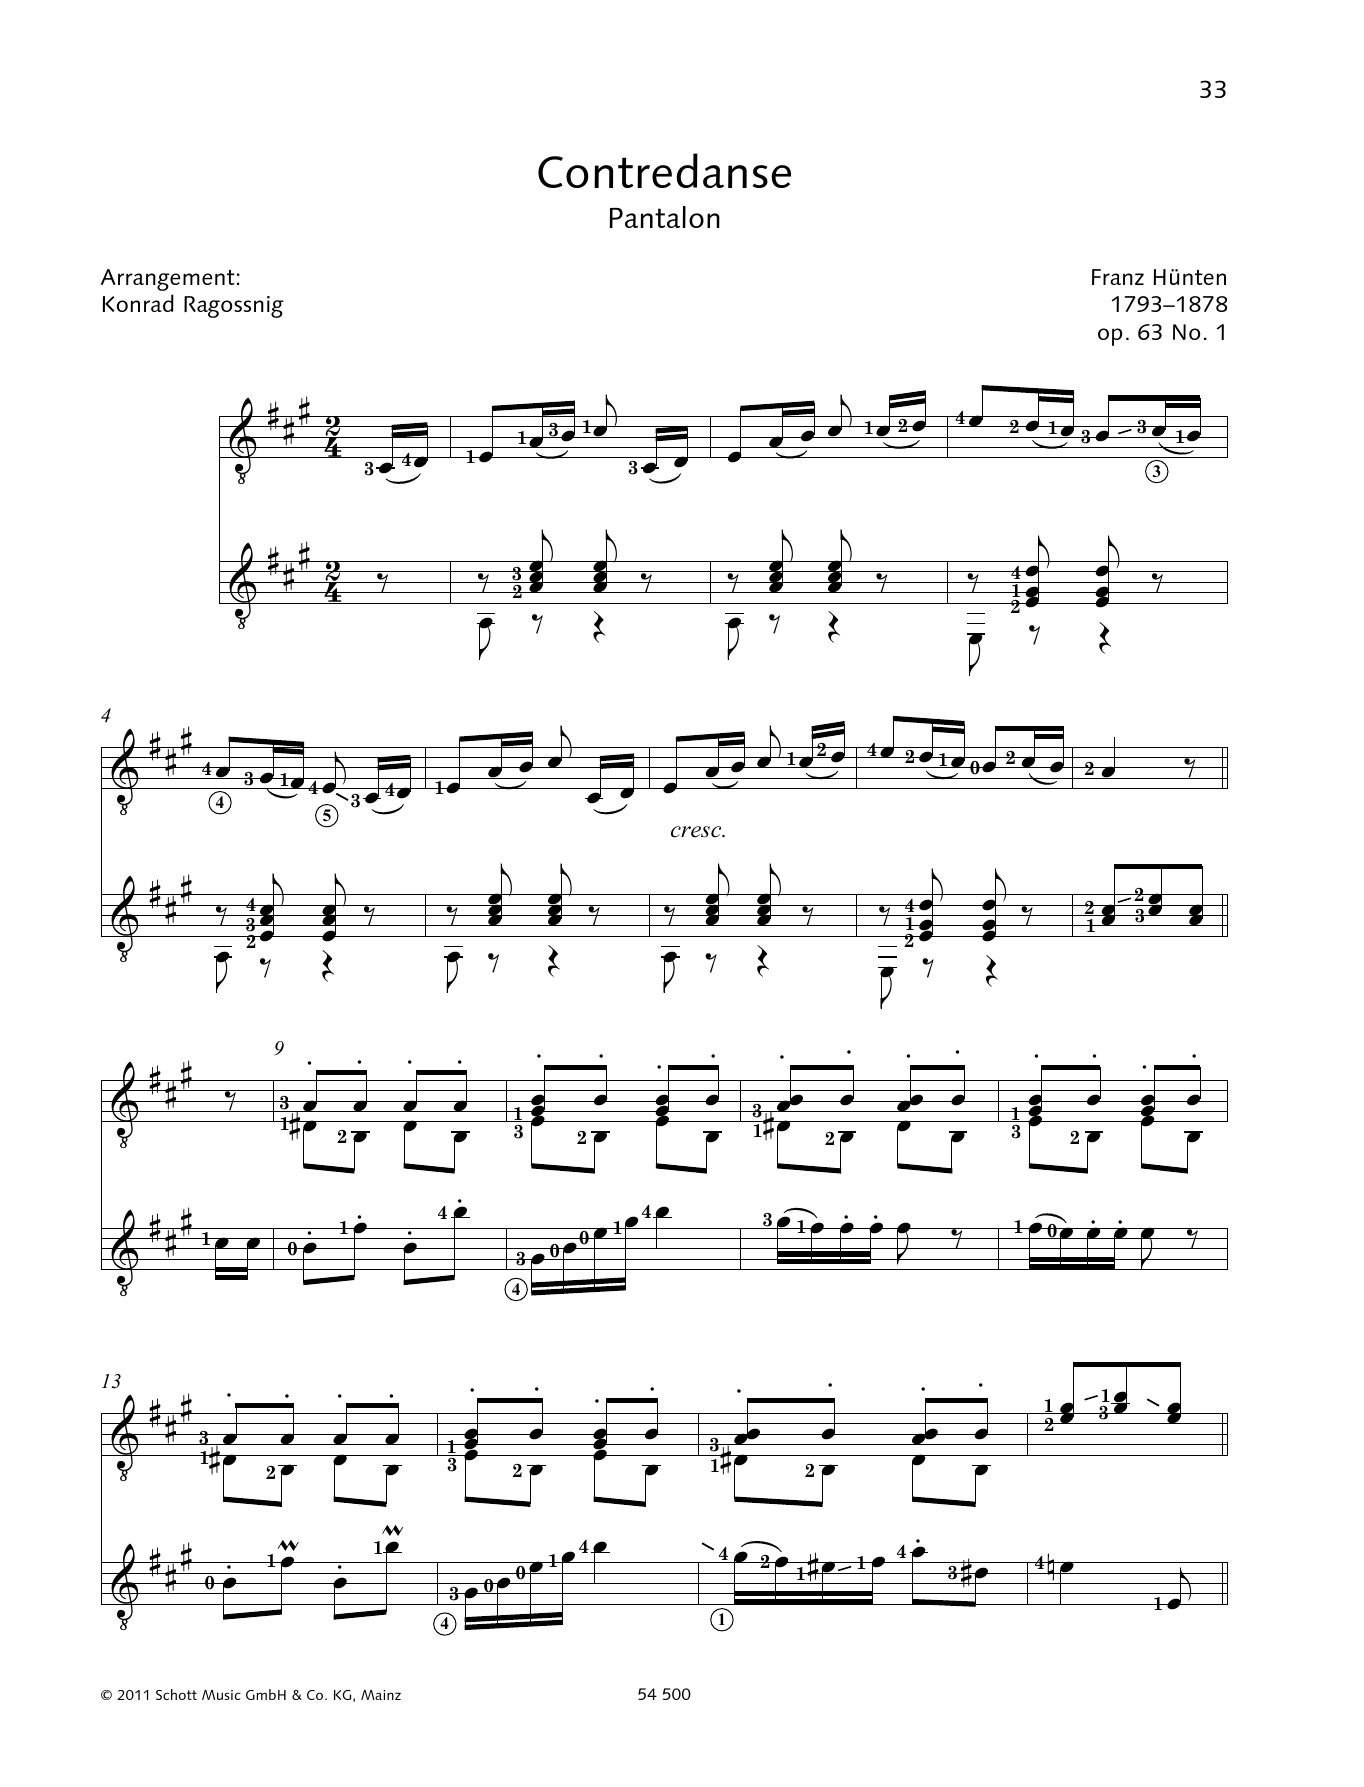 Contredanse - Full Score Sheet Music